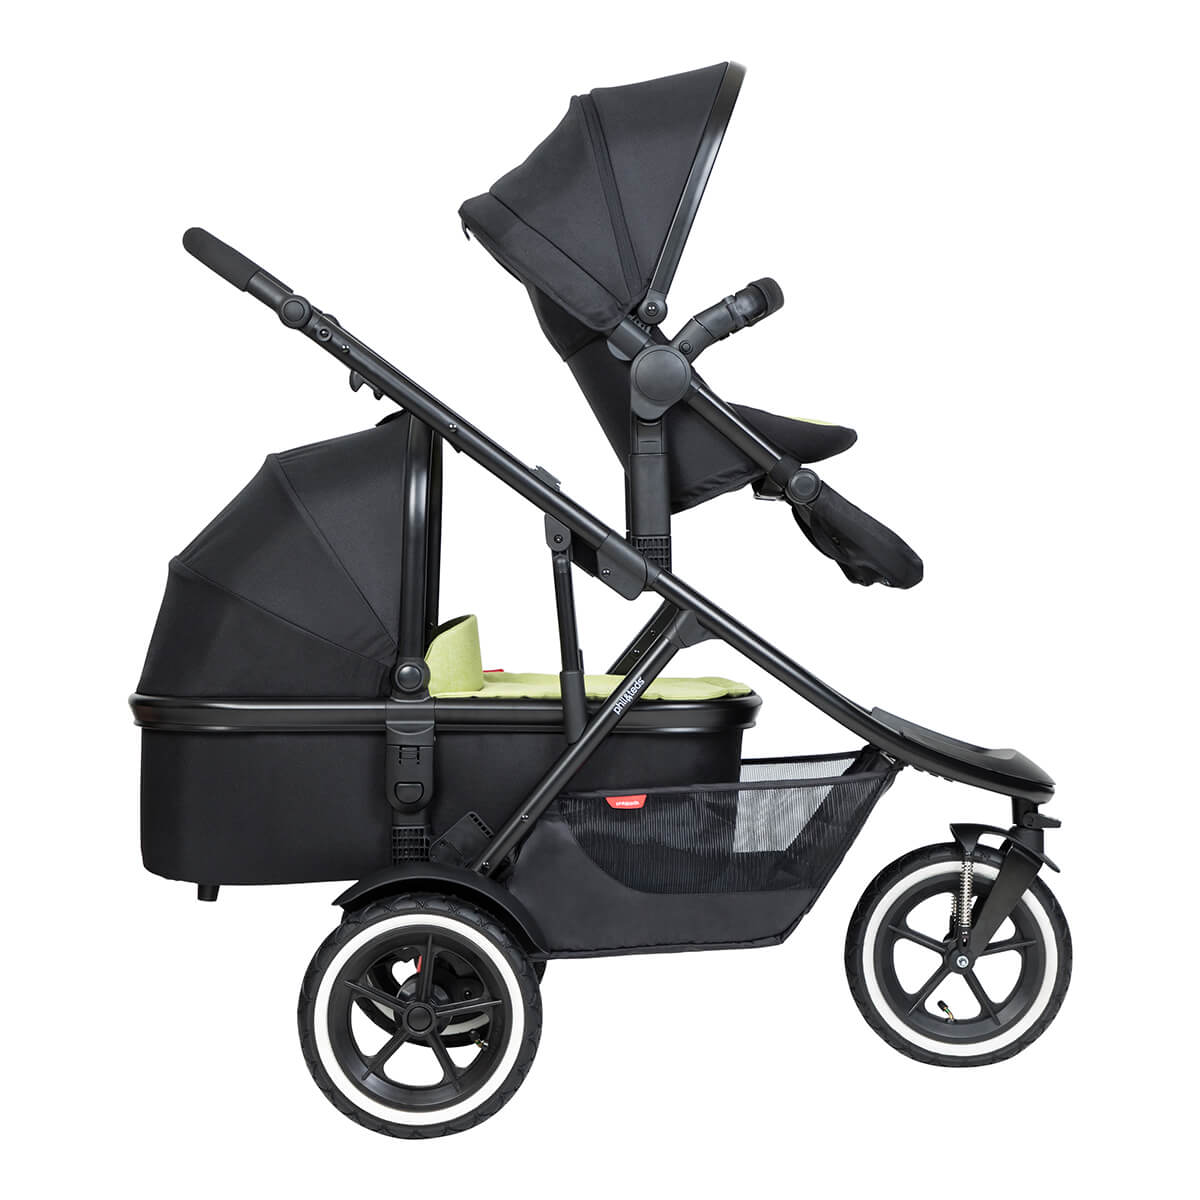 https://cdn.accentuate.io/4513463468128/19440099688632/philteds-sport-buggy-with-double-kit-extended-clip-and-snug-carrycot-side-view-v1626486661191.jpg?1200x1200